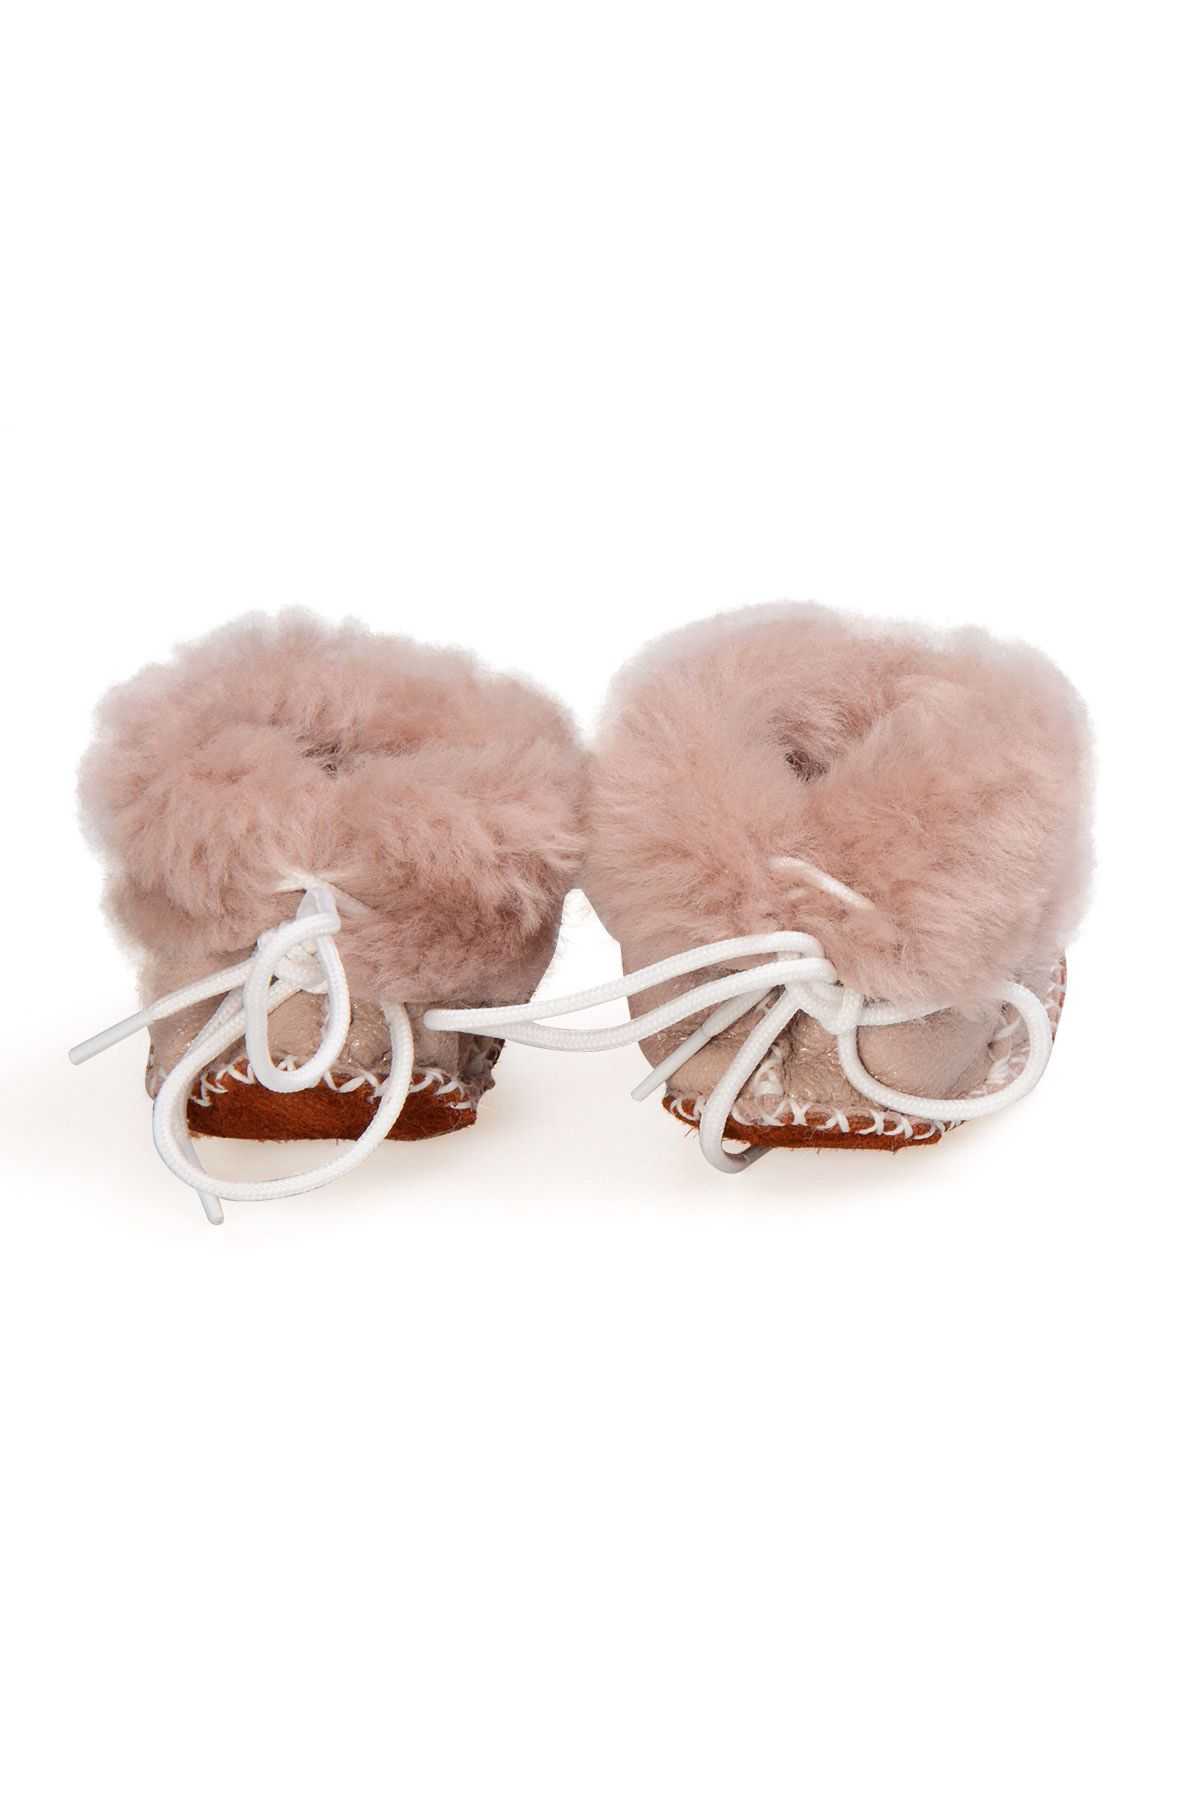 Pegia Babies Laced Shearling Booties 141105 Powdery